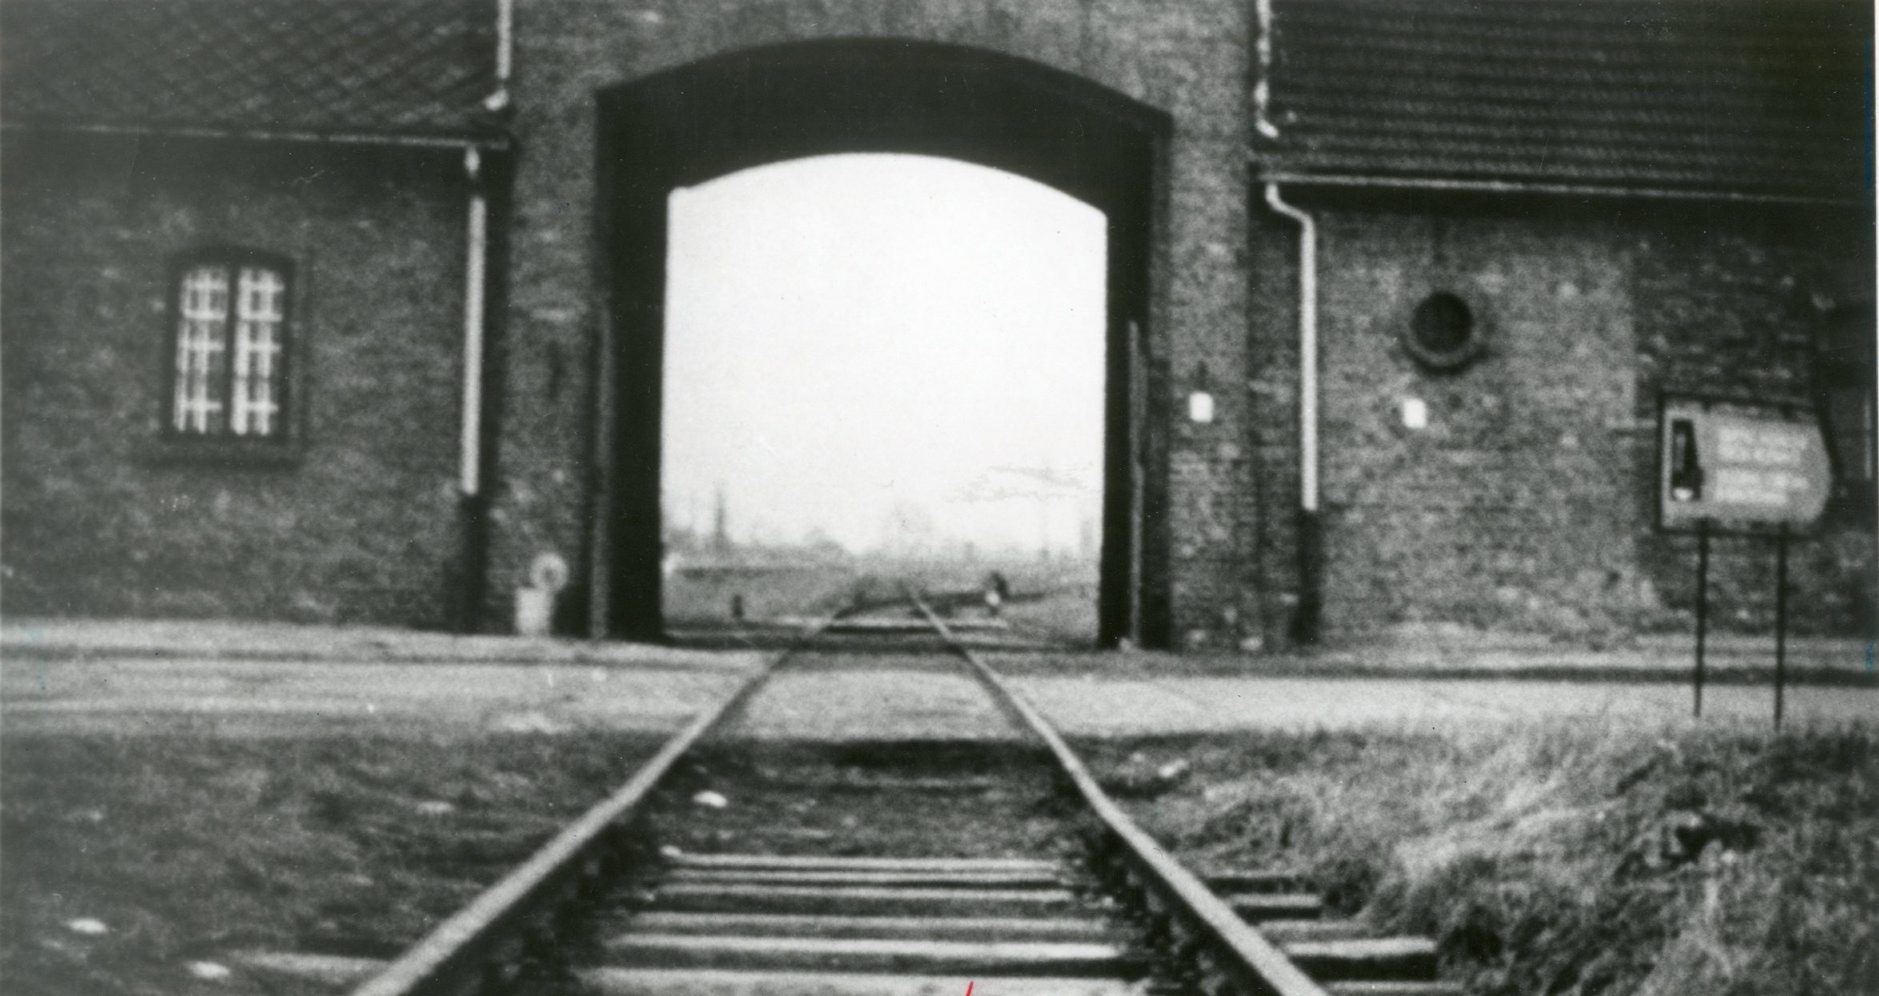 The entrance to the notorious concentration camp at Auschwitz.